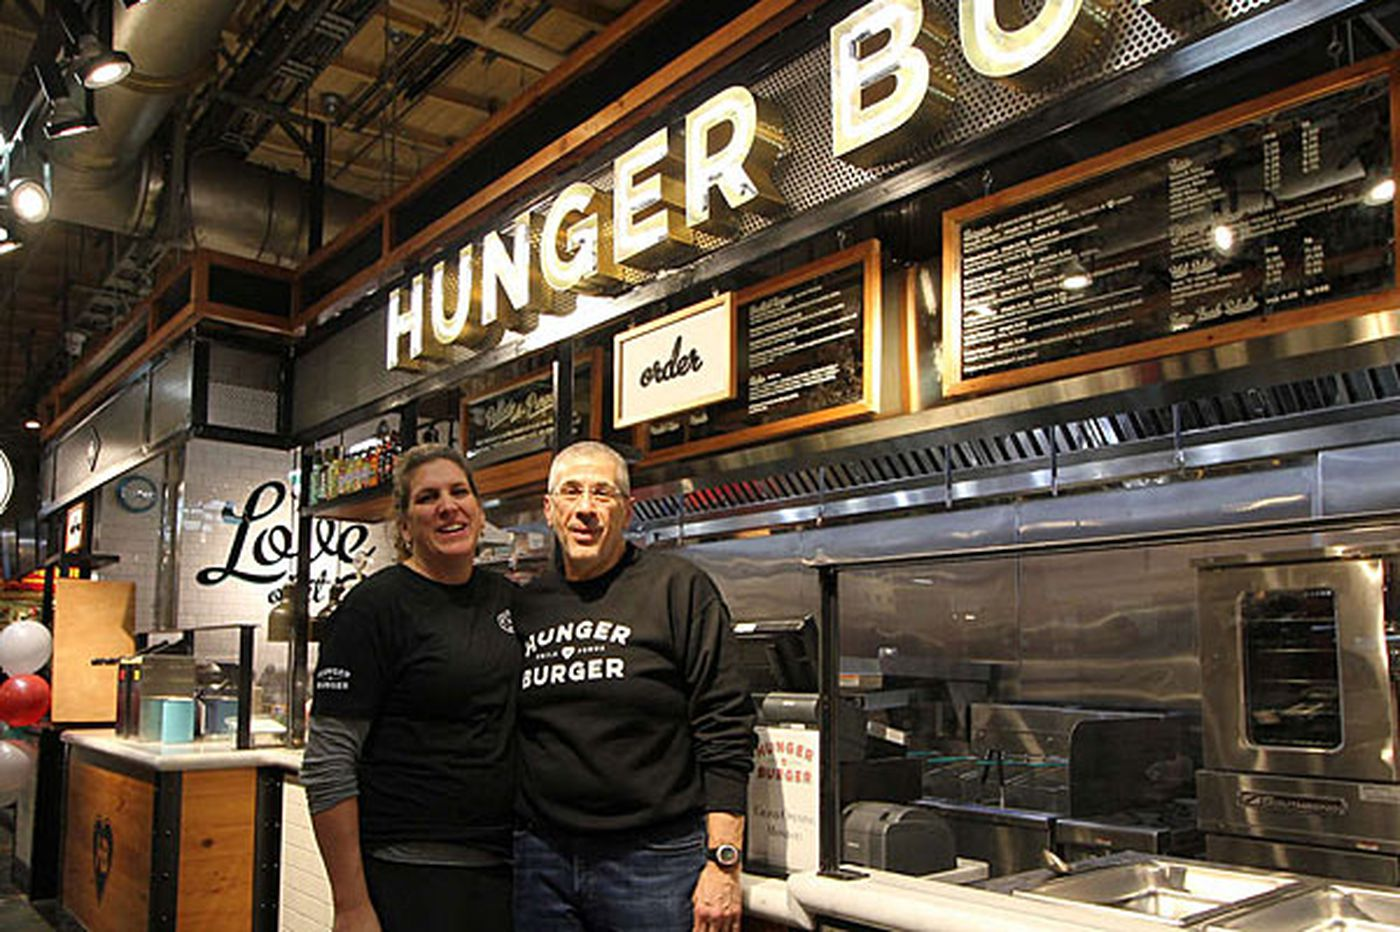 Table Talk: Head for Hunger Burger at Reading Terminal Market